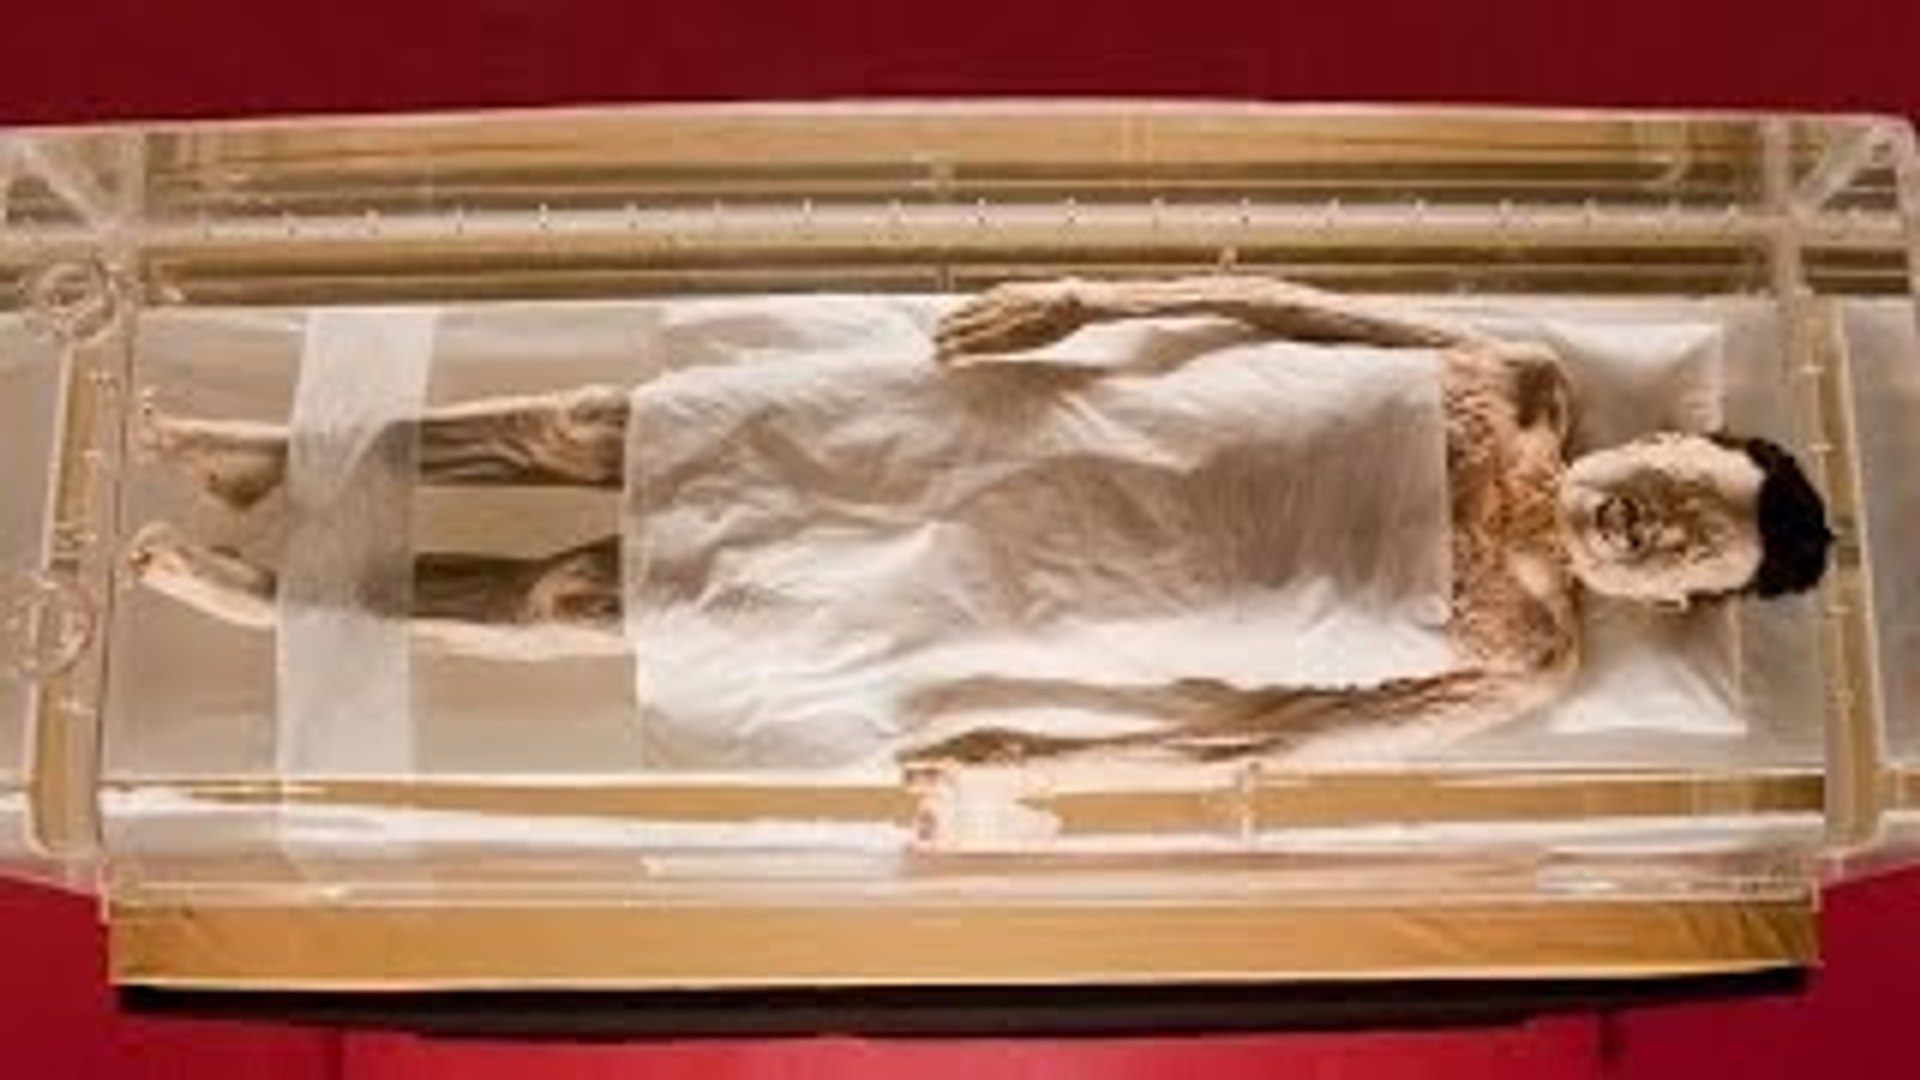 The 2,000 Year-Old Mummified Body of Lady Xin Zhui HD - Archaeology Documentary